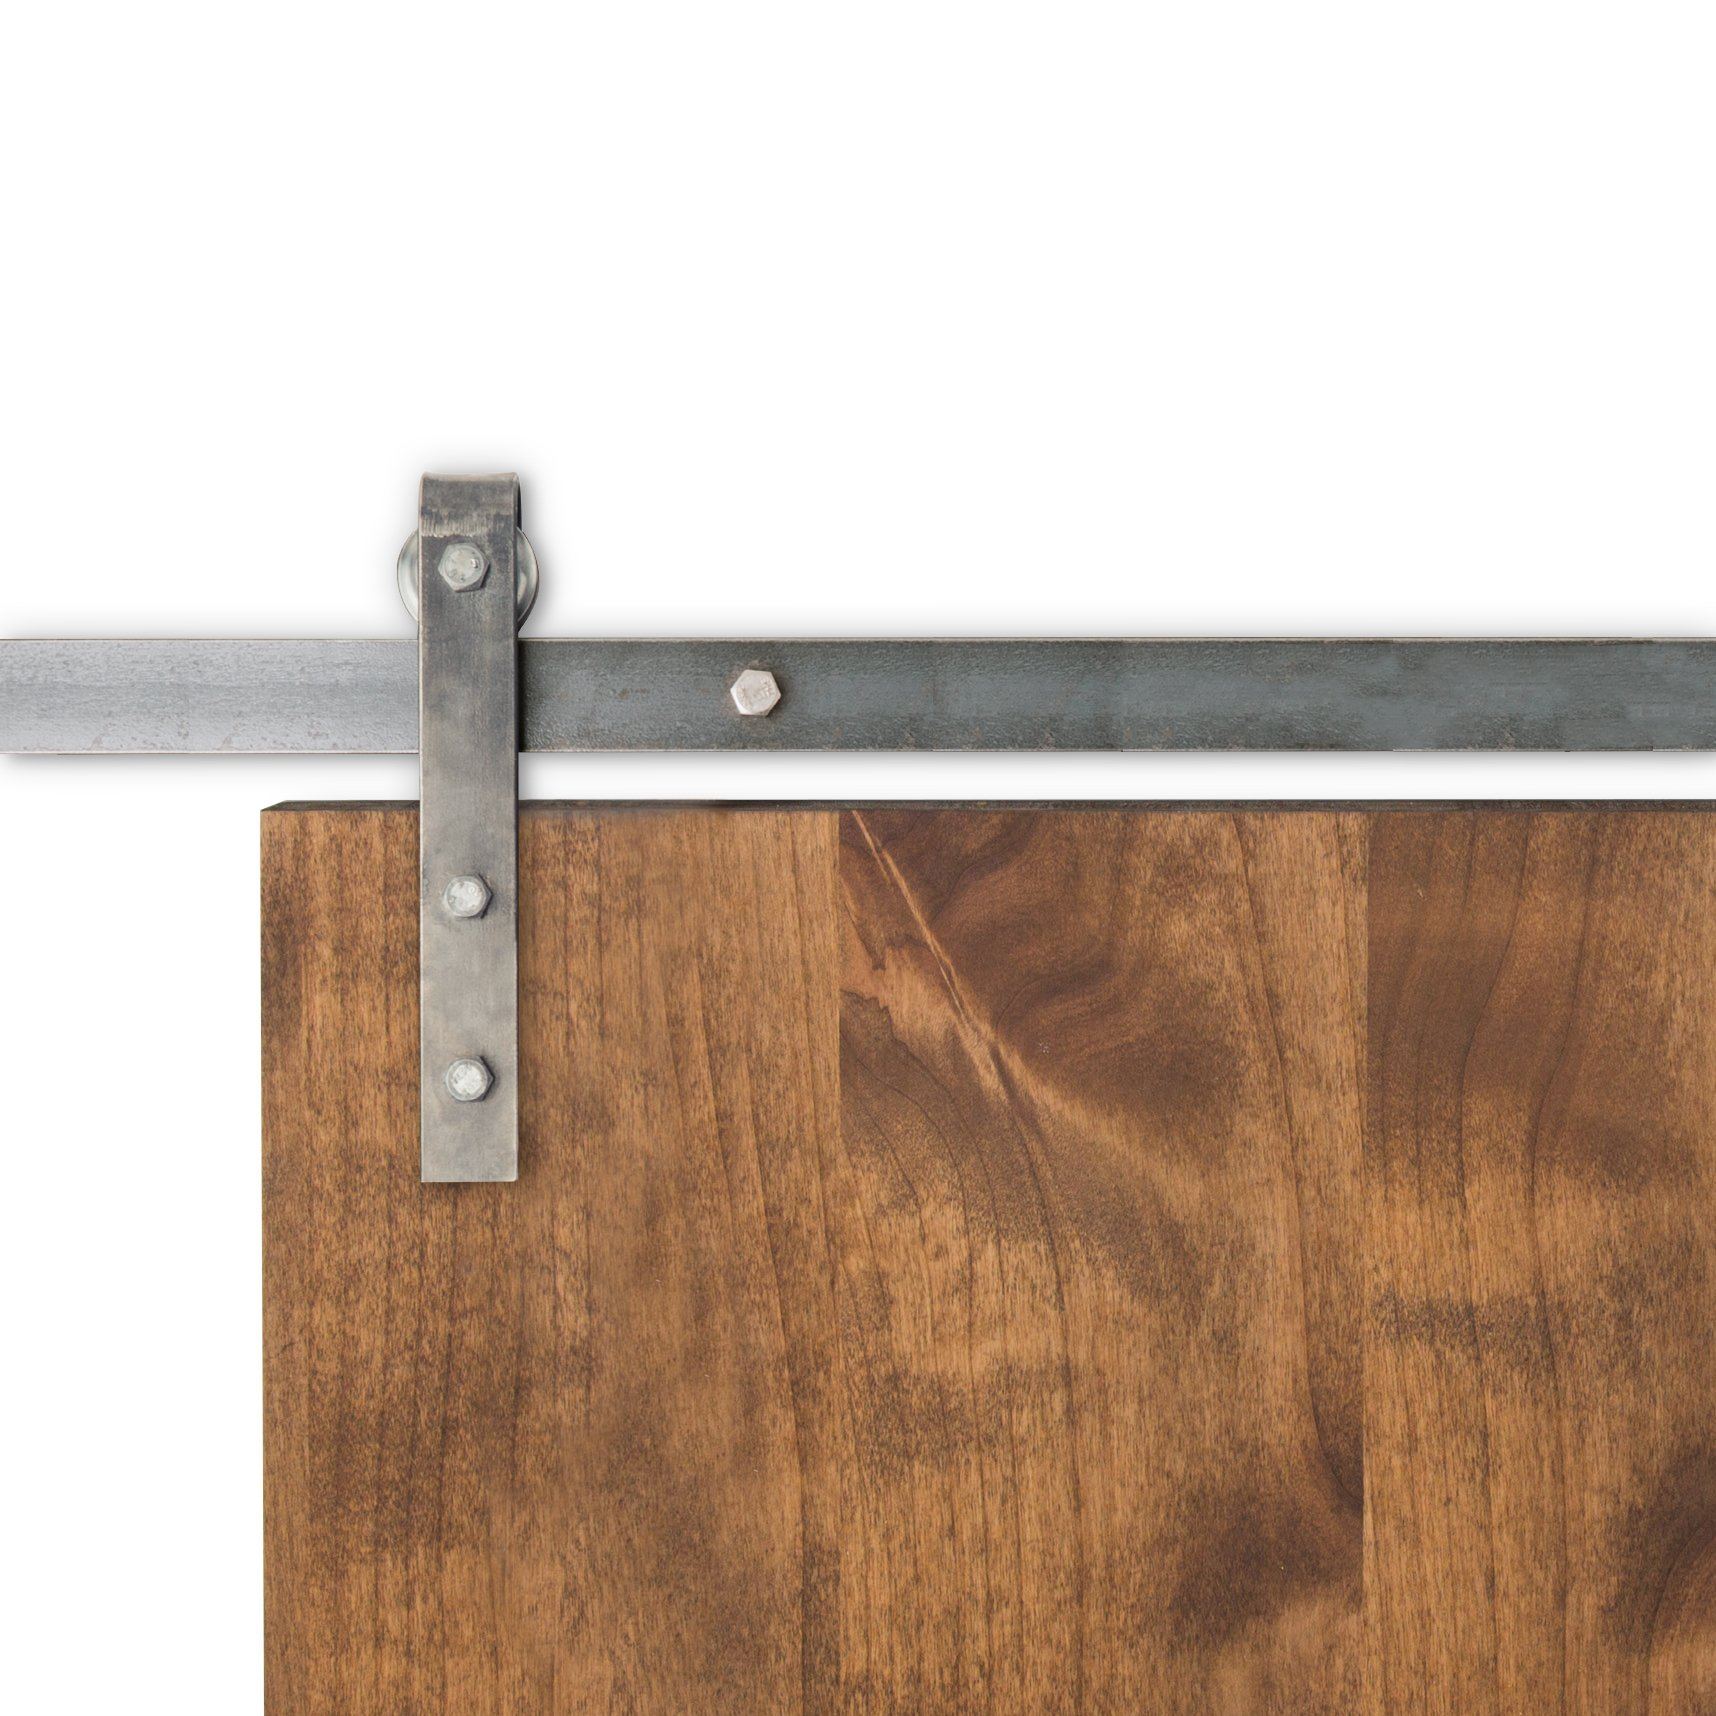 Artisan Hardware Micro |Pick Your Track Size|Color Barn Door Hardware Kit | 5 FT 6 Inches |USA MADE | Track | Raw Steel